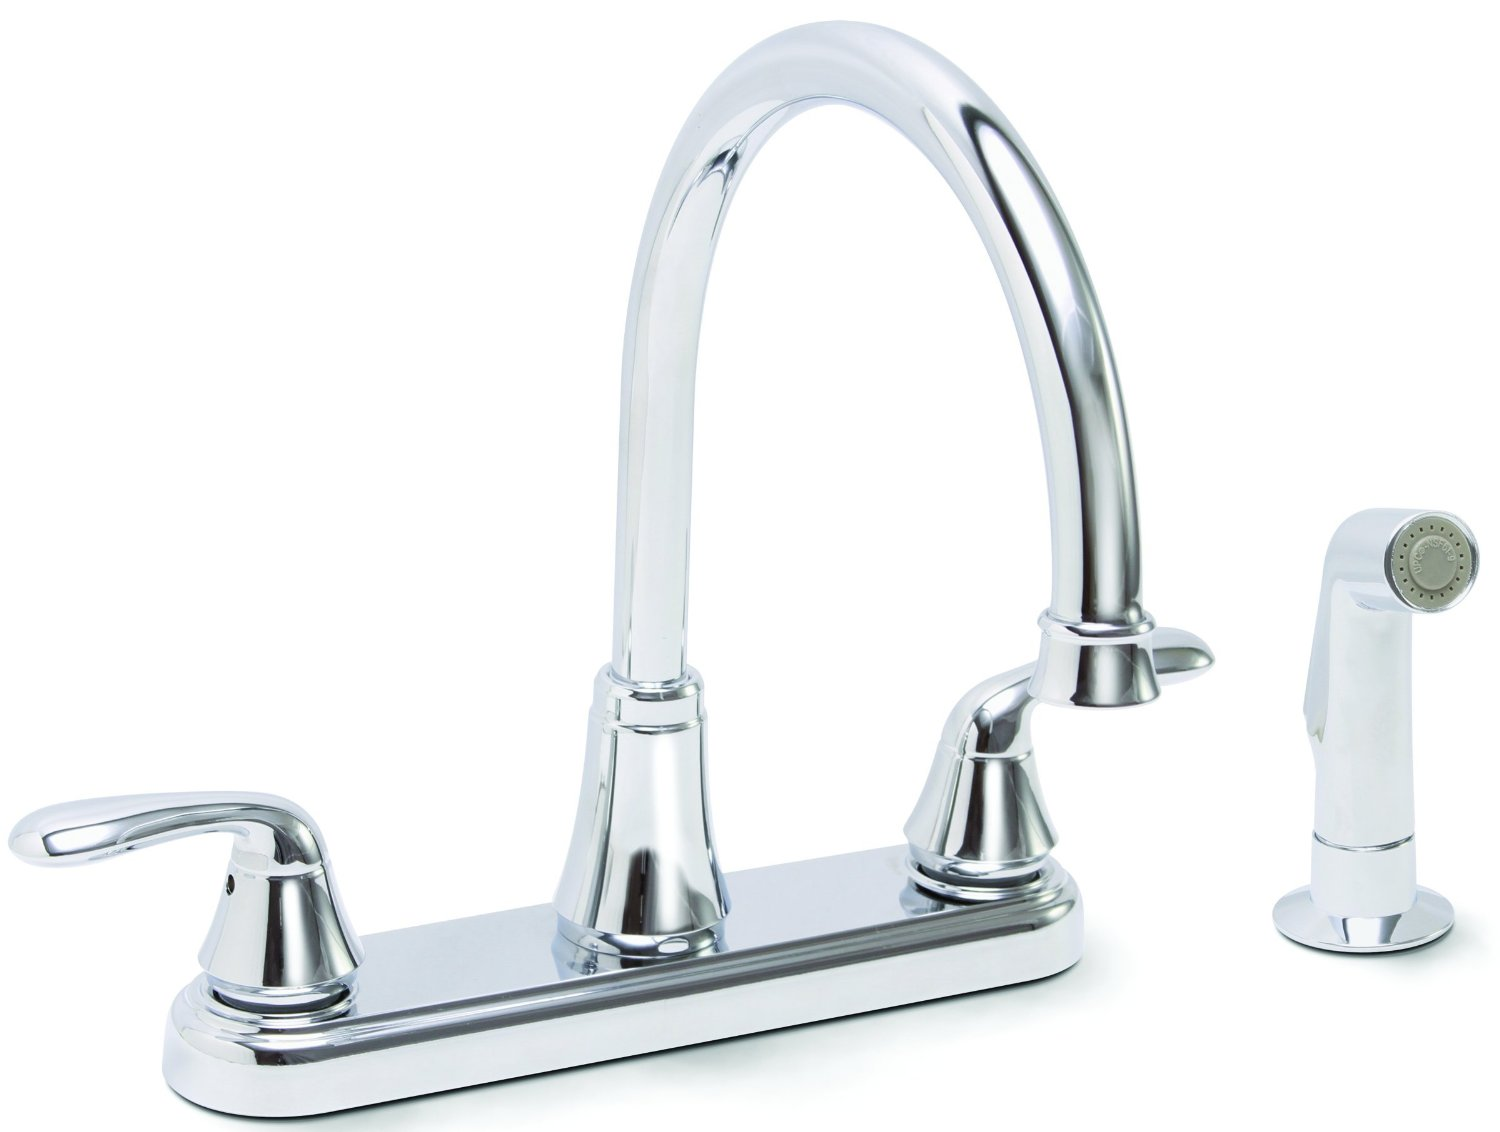 Best Kitchen Sink Faucets: Single & Two Handle, White & Black Faucets